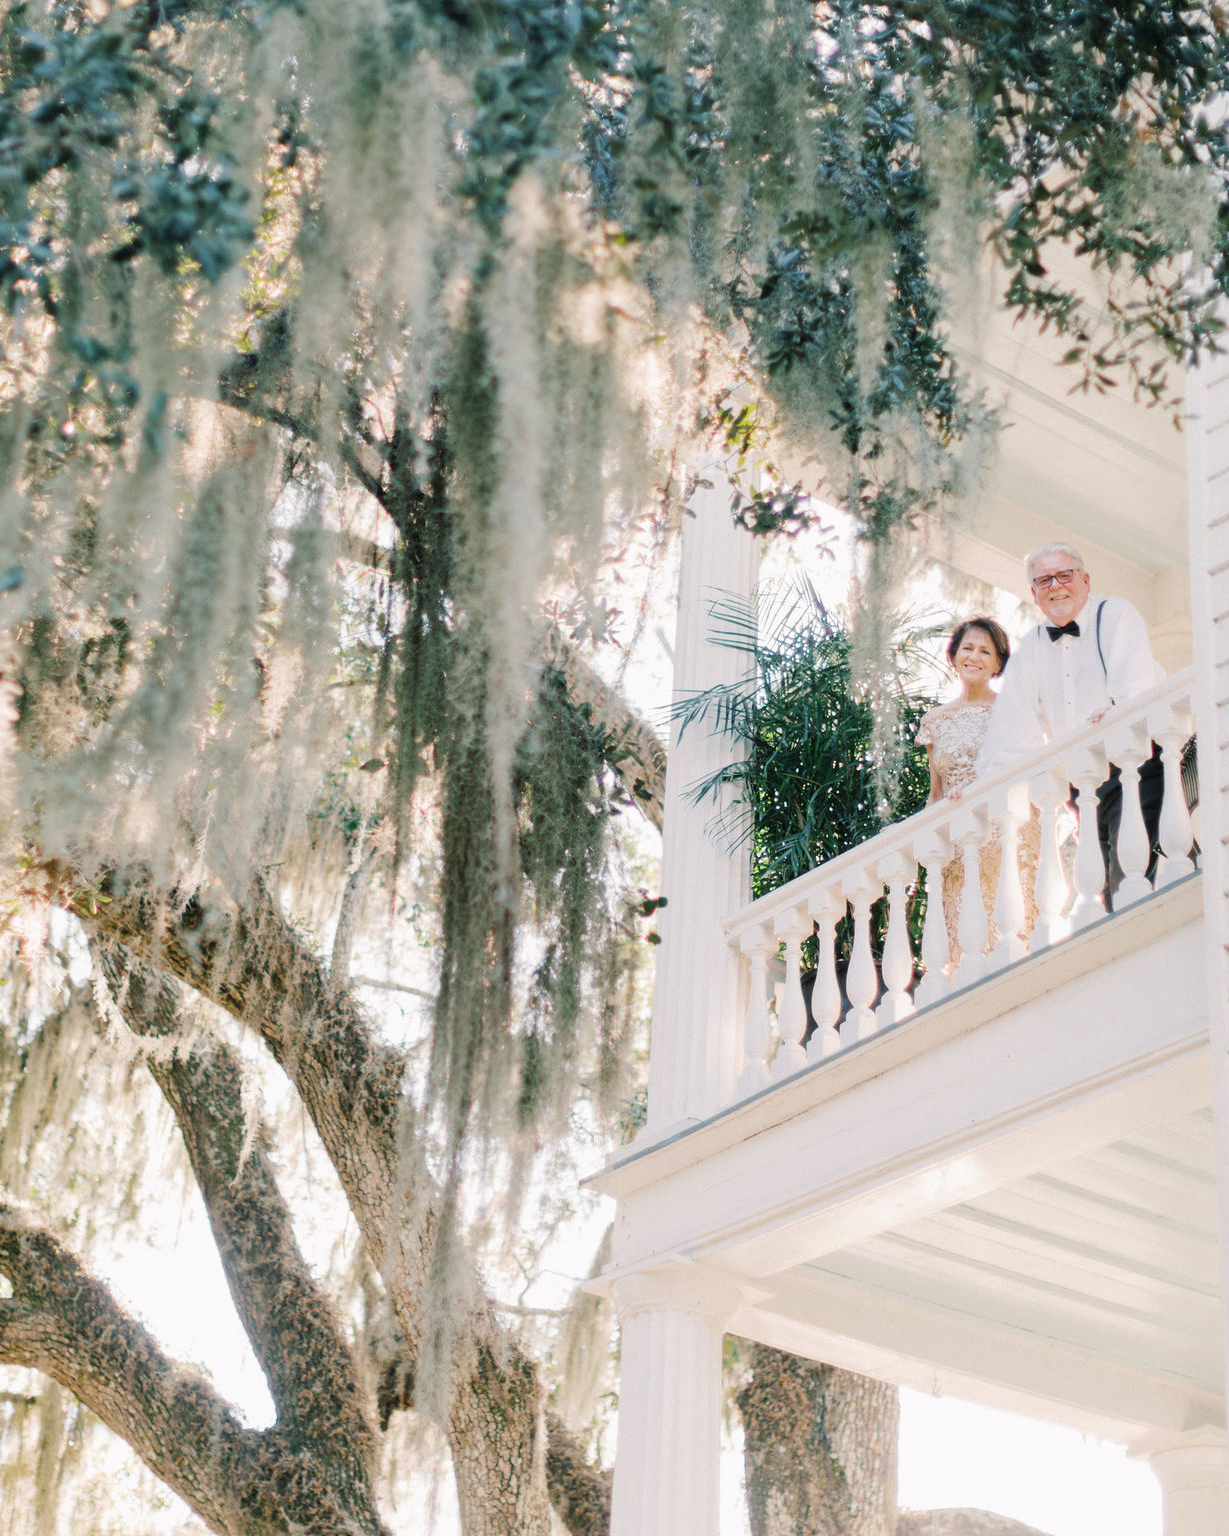 megan parking wedding step parents looking down from white balcony